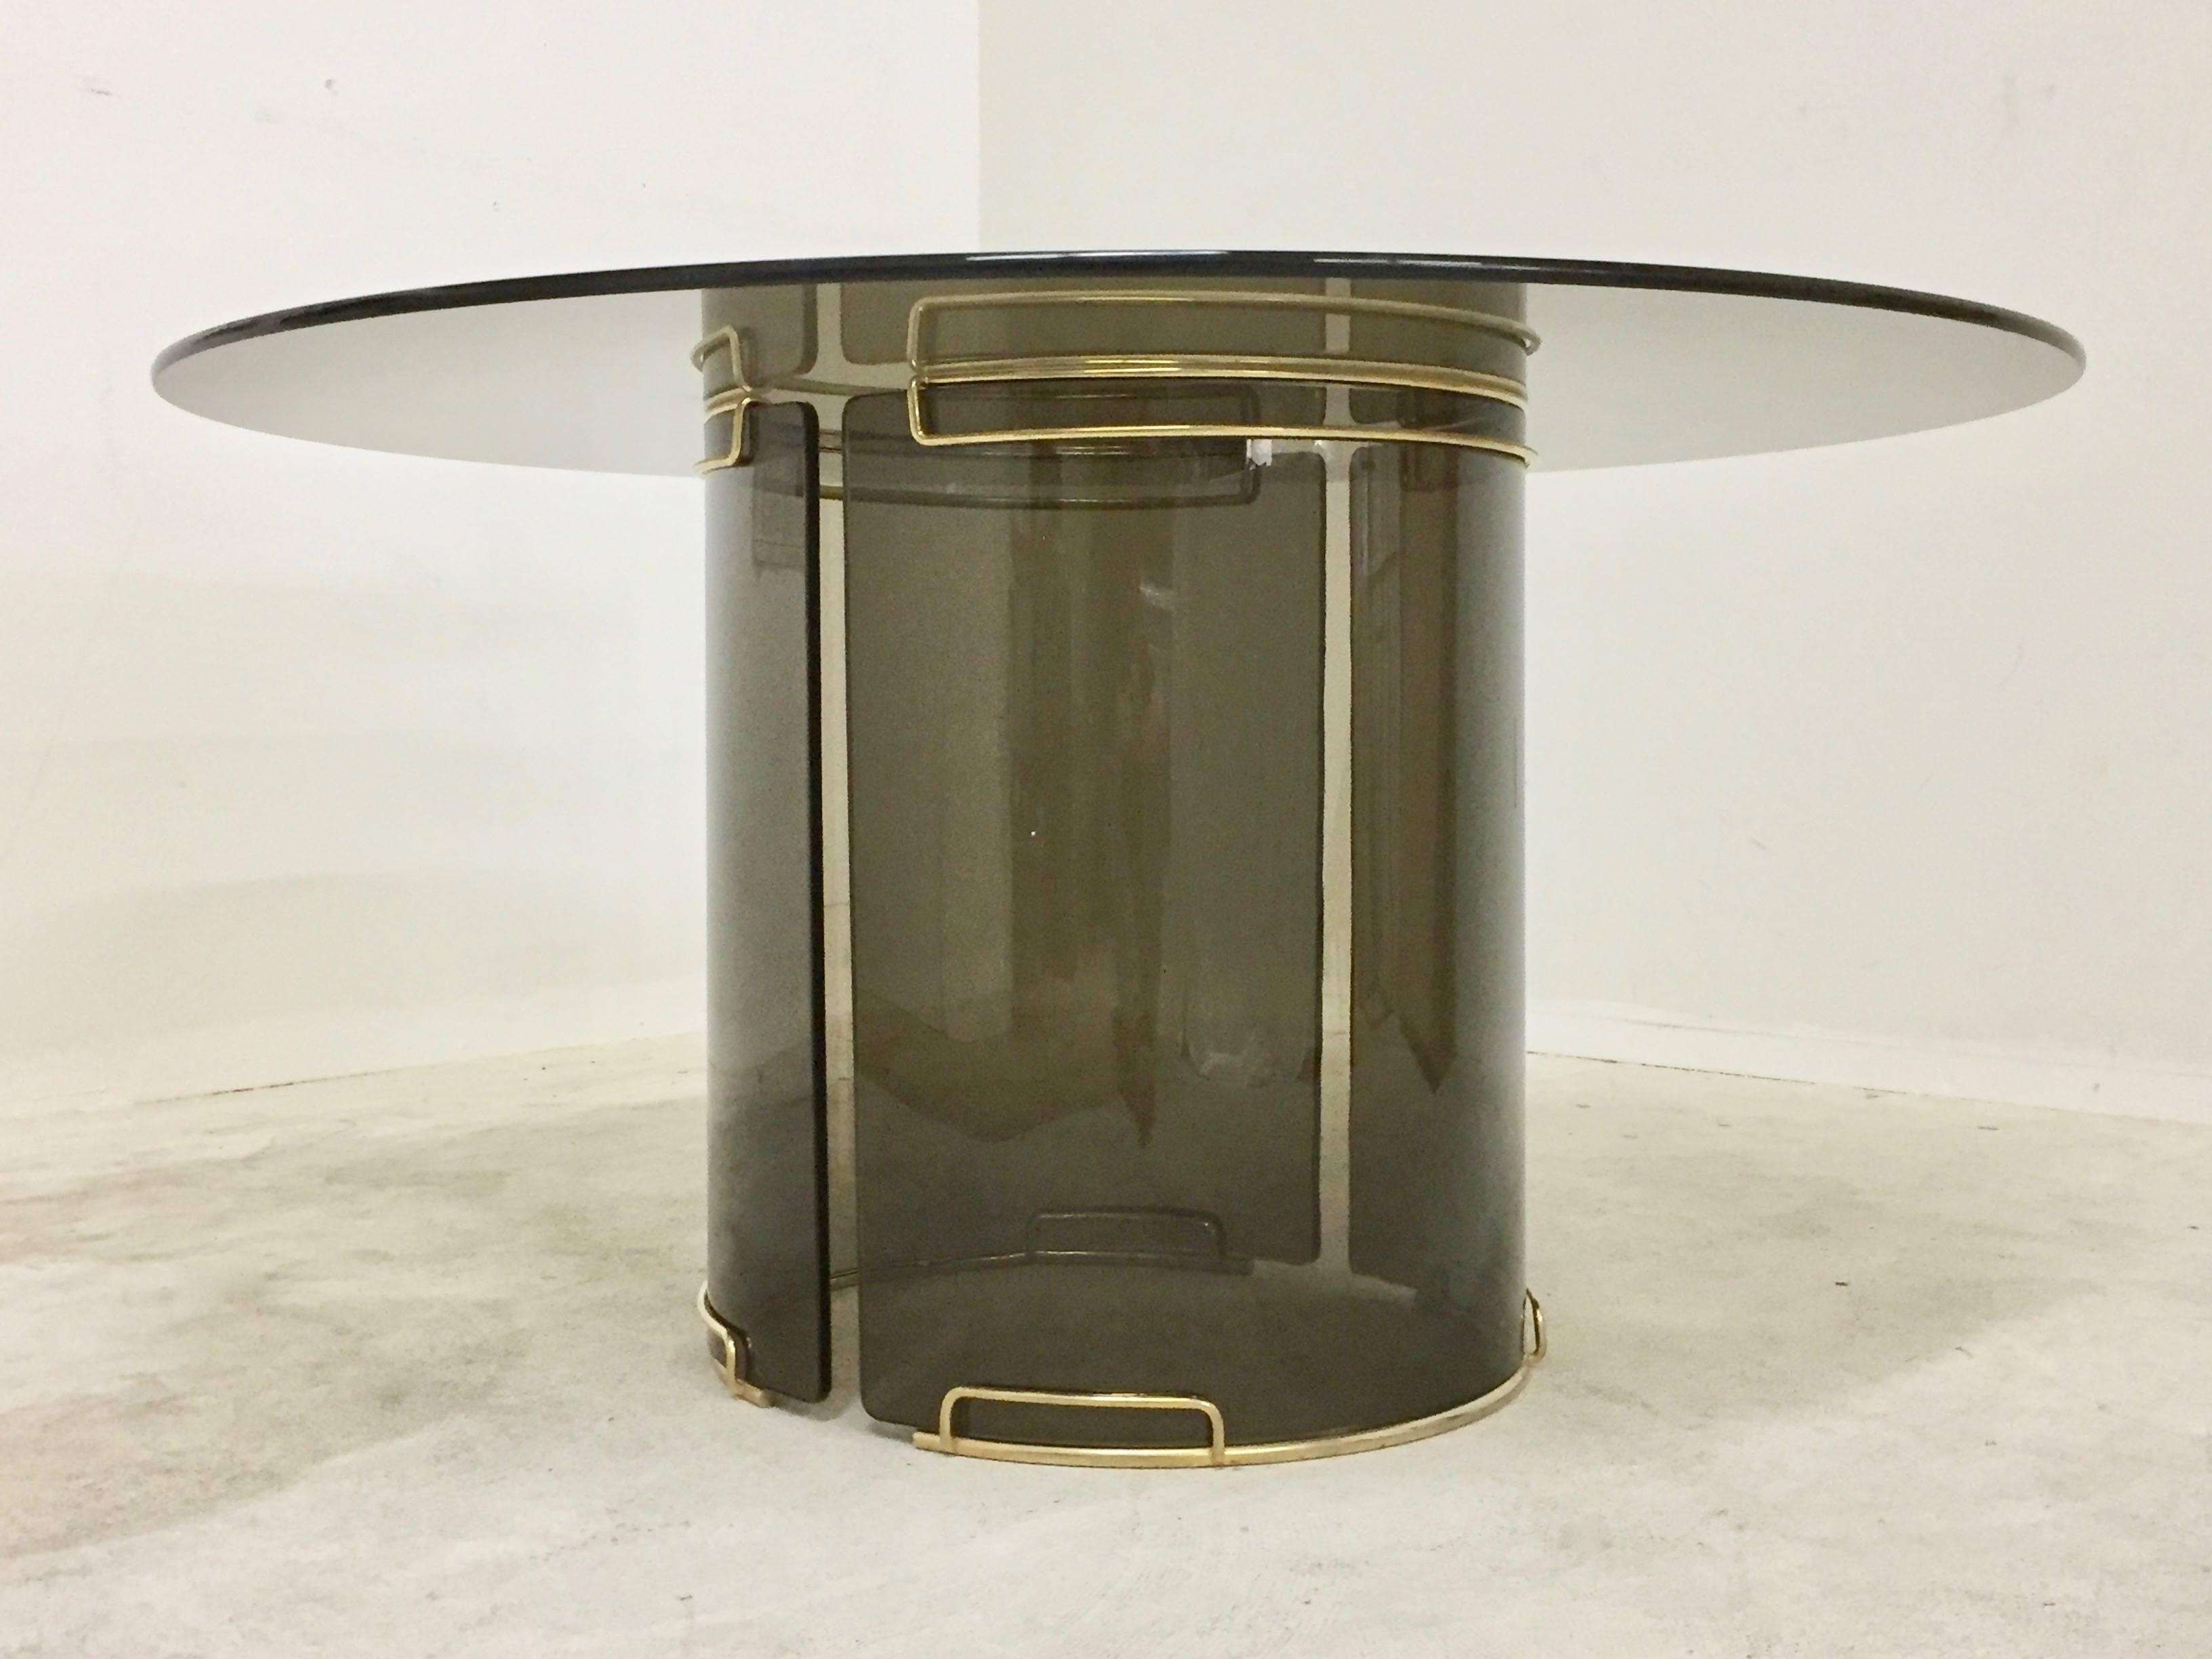 Curved Glass Dining Tables Regarding Popular Round Grey Smoky Glass Dining Table With Curved Glass Base And Brass (View 17 of 25)